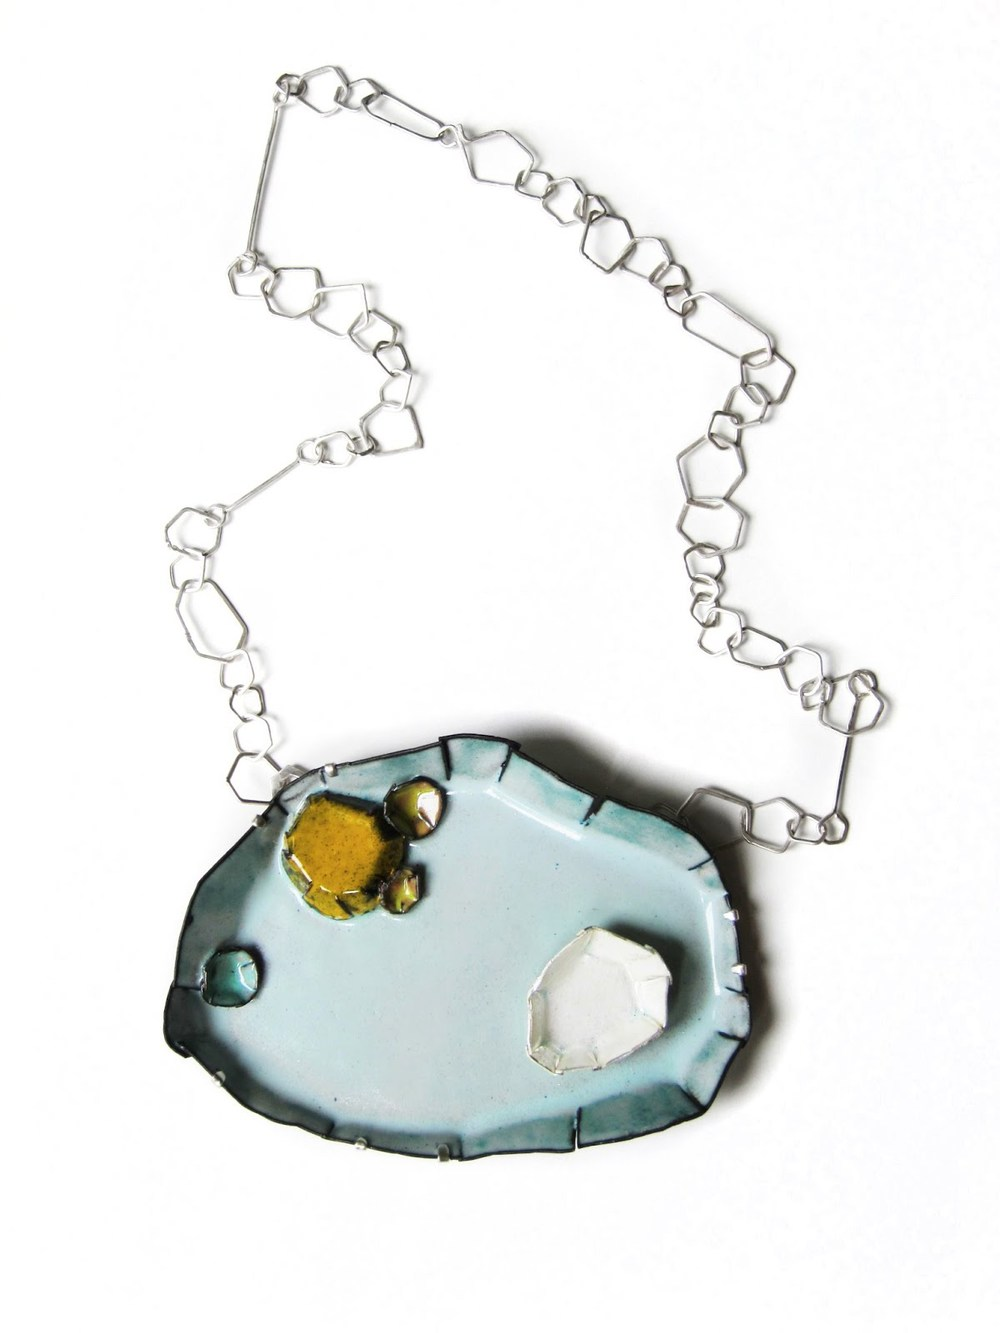 N1 Mess, K.: Barnacle No. 21, Large Light Blue_Necklace_2012.jpg